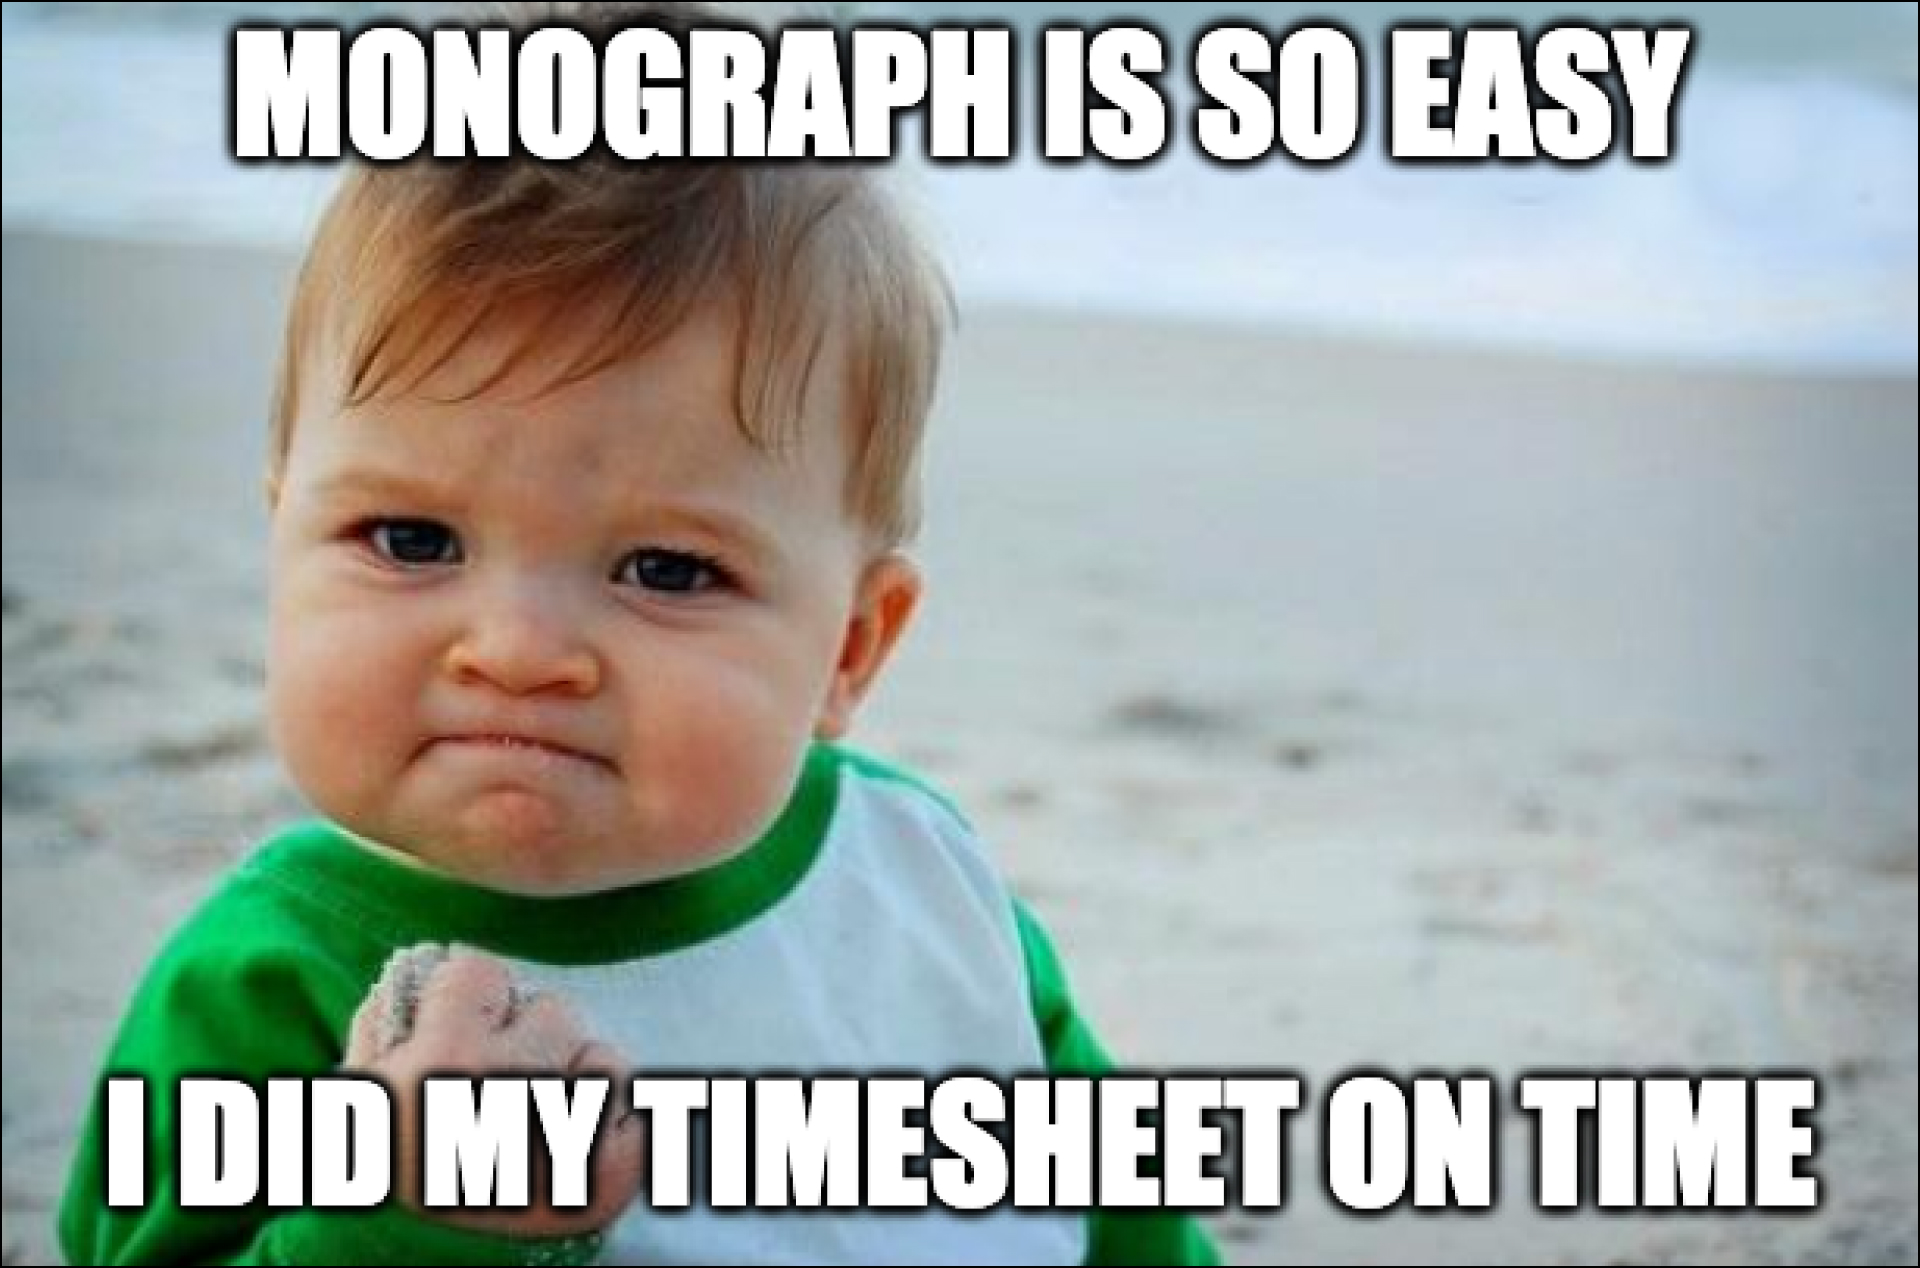 Monograph is so easy - I did my timesheet on time